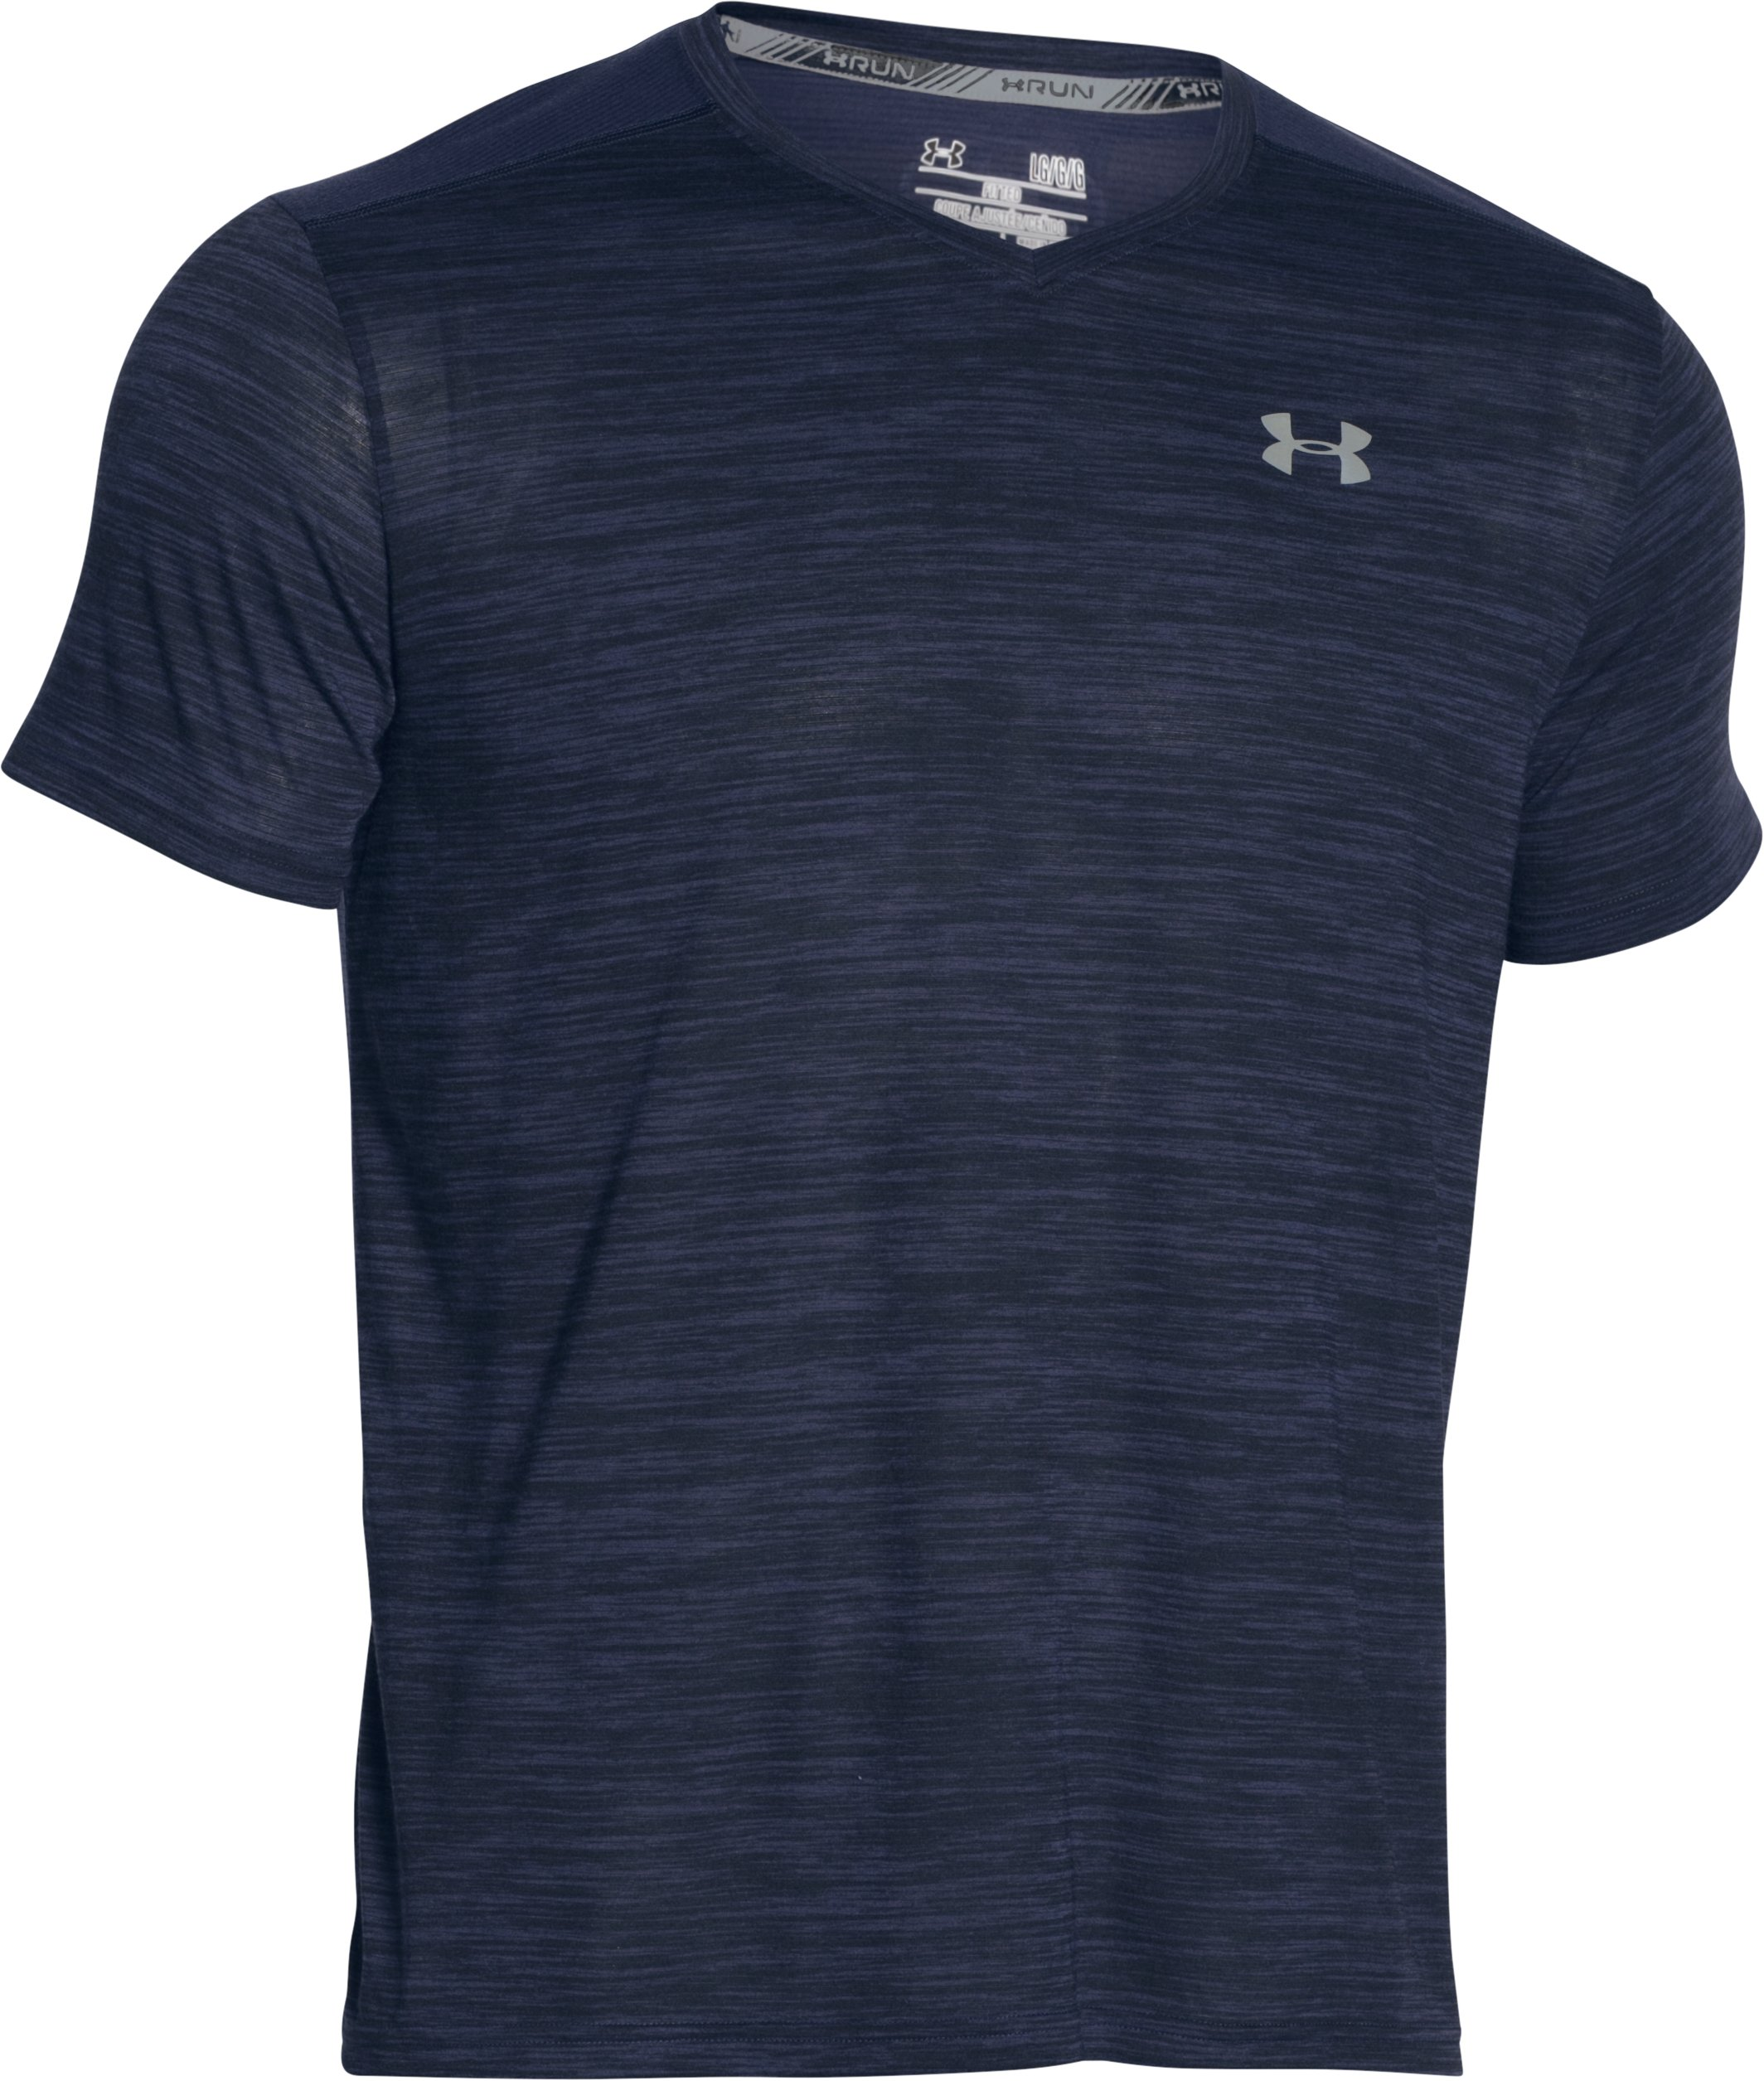 Men's Threadborne™ Streaker Run V-Neck T-Shirt, Midnight Navy